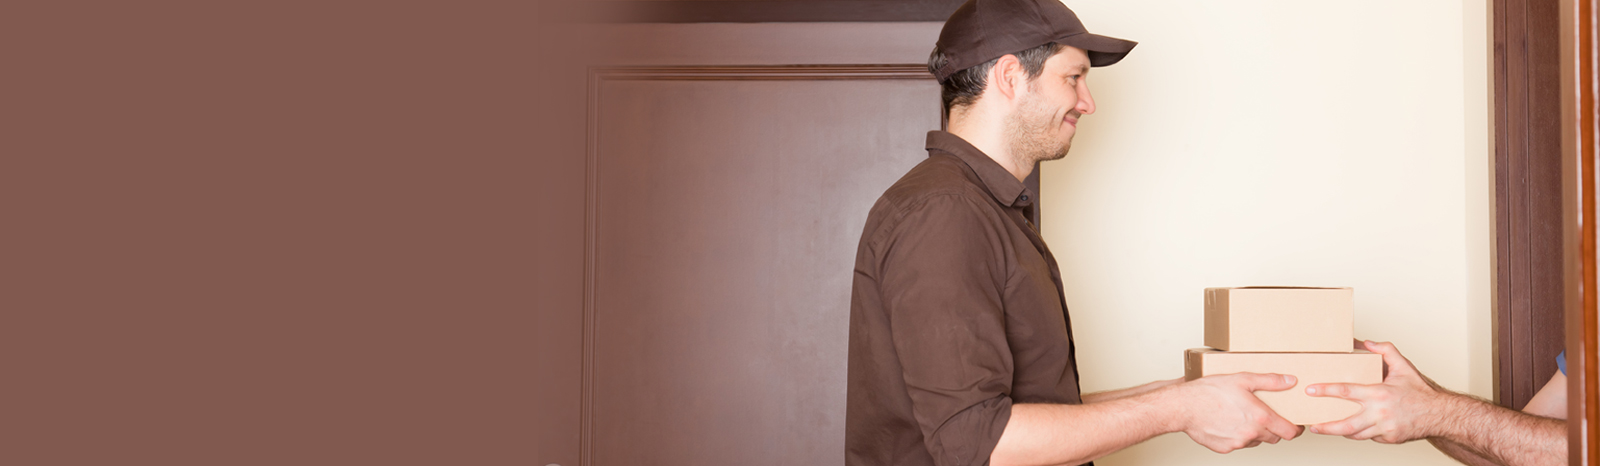 Door-delivery & Door Delivery \u0026 Night Out? Get Info On Local Restaurants And Save ... Pezcame.Com